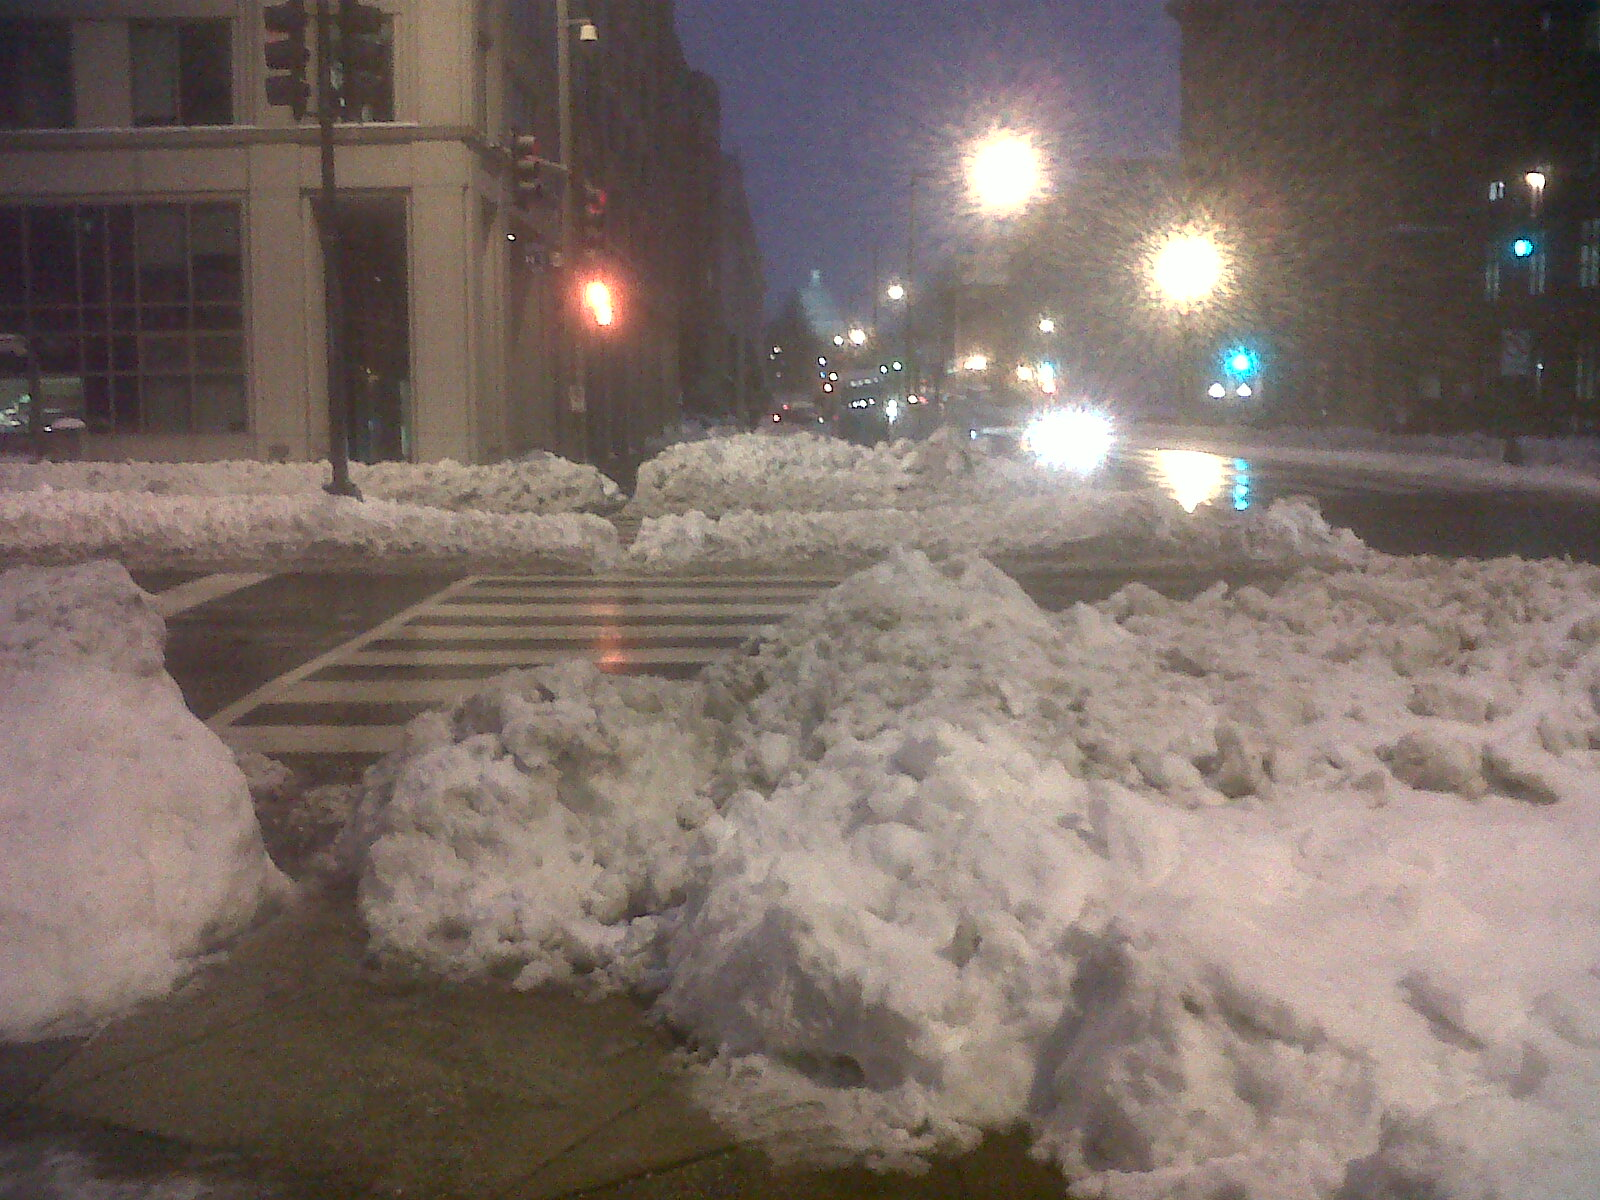 Snow drifts make it dangerous to cross busy intersections, seen here at North Capitol and H. Photo by Allison Bishins.